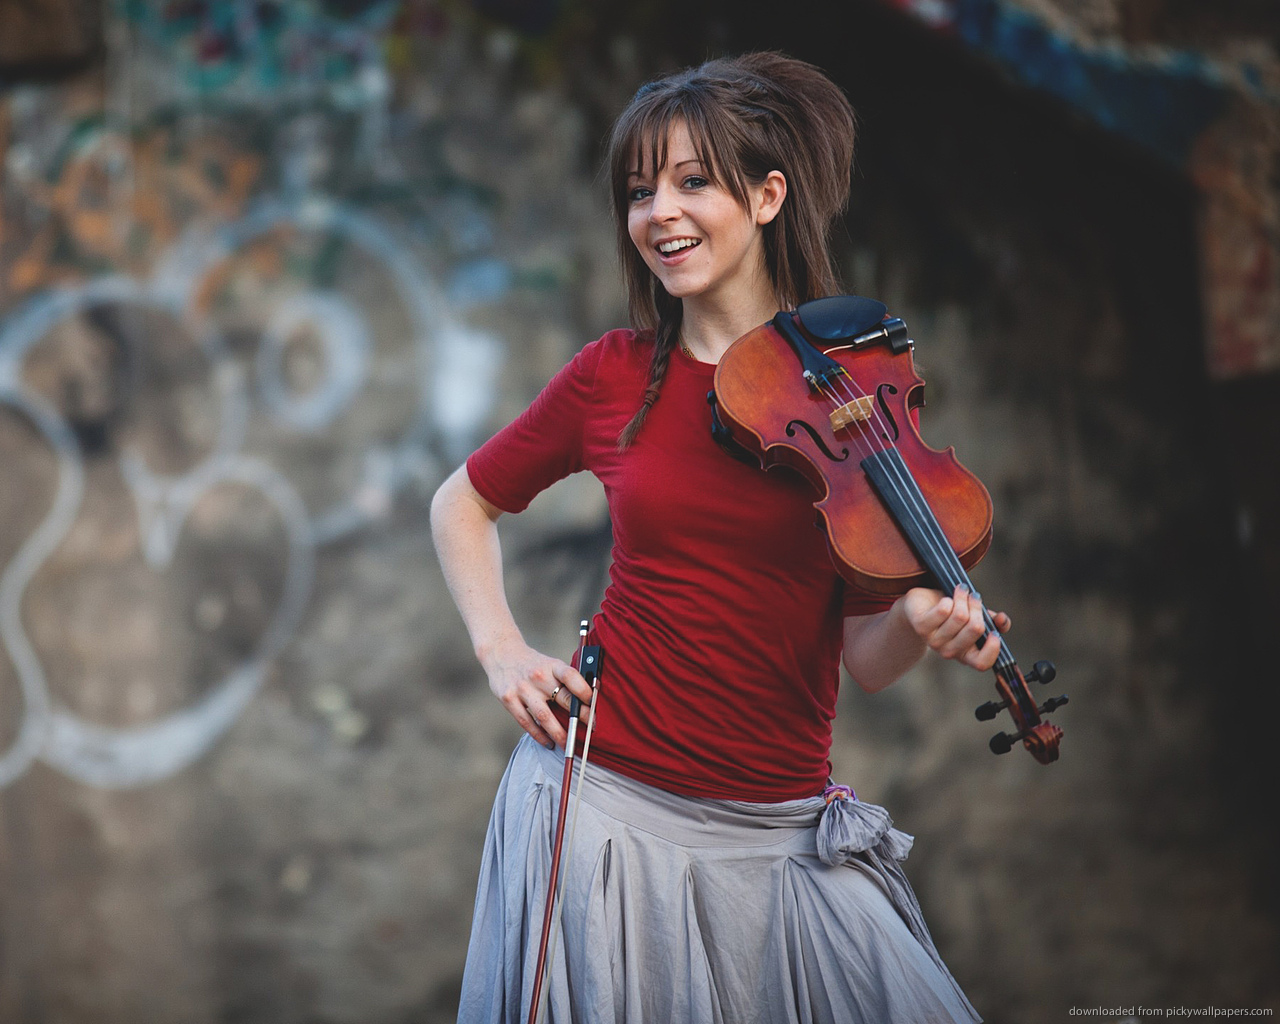 Cute Lindsey Stirling Wallpaper